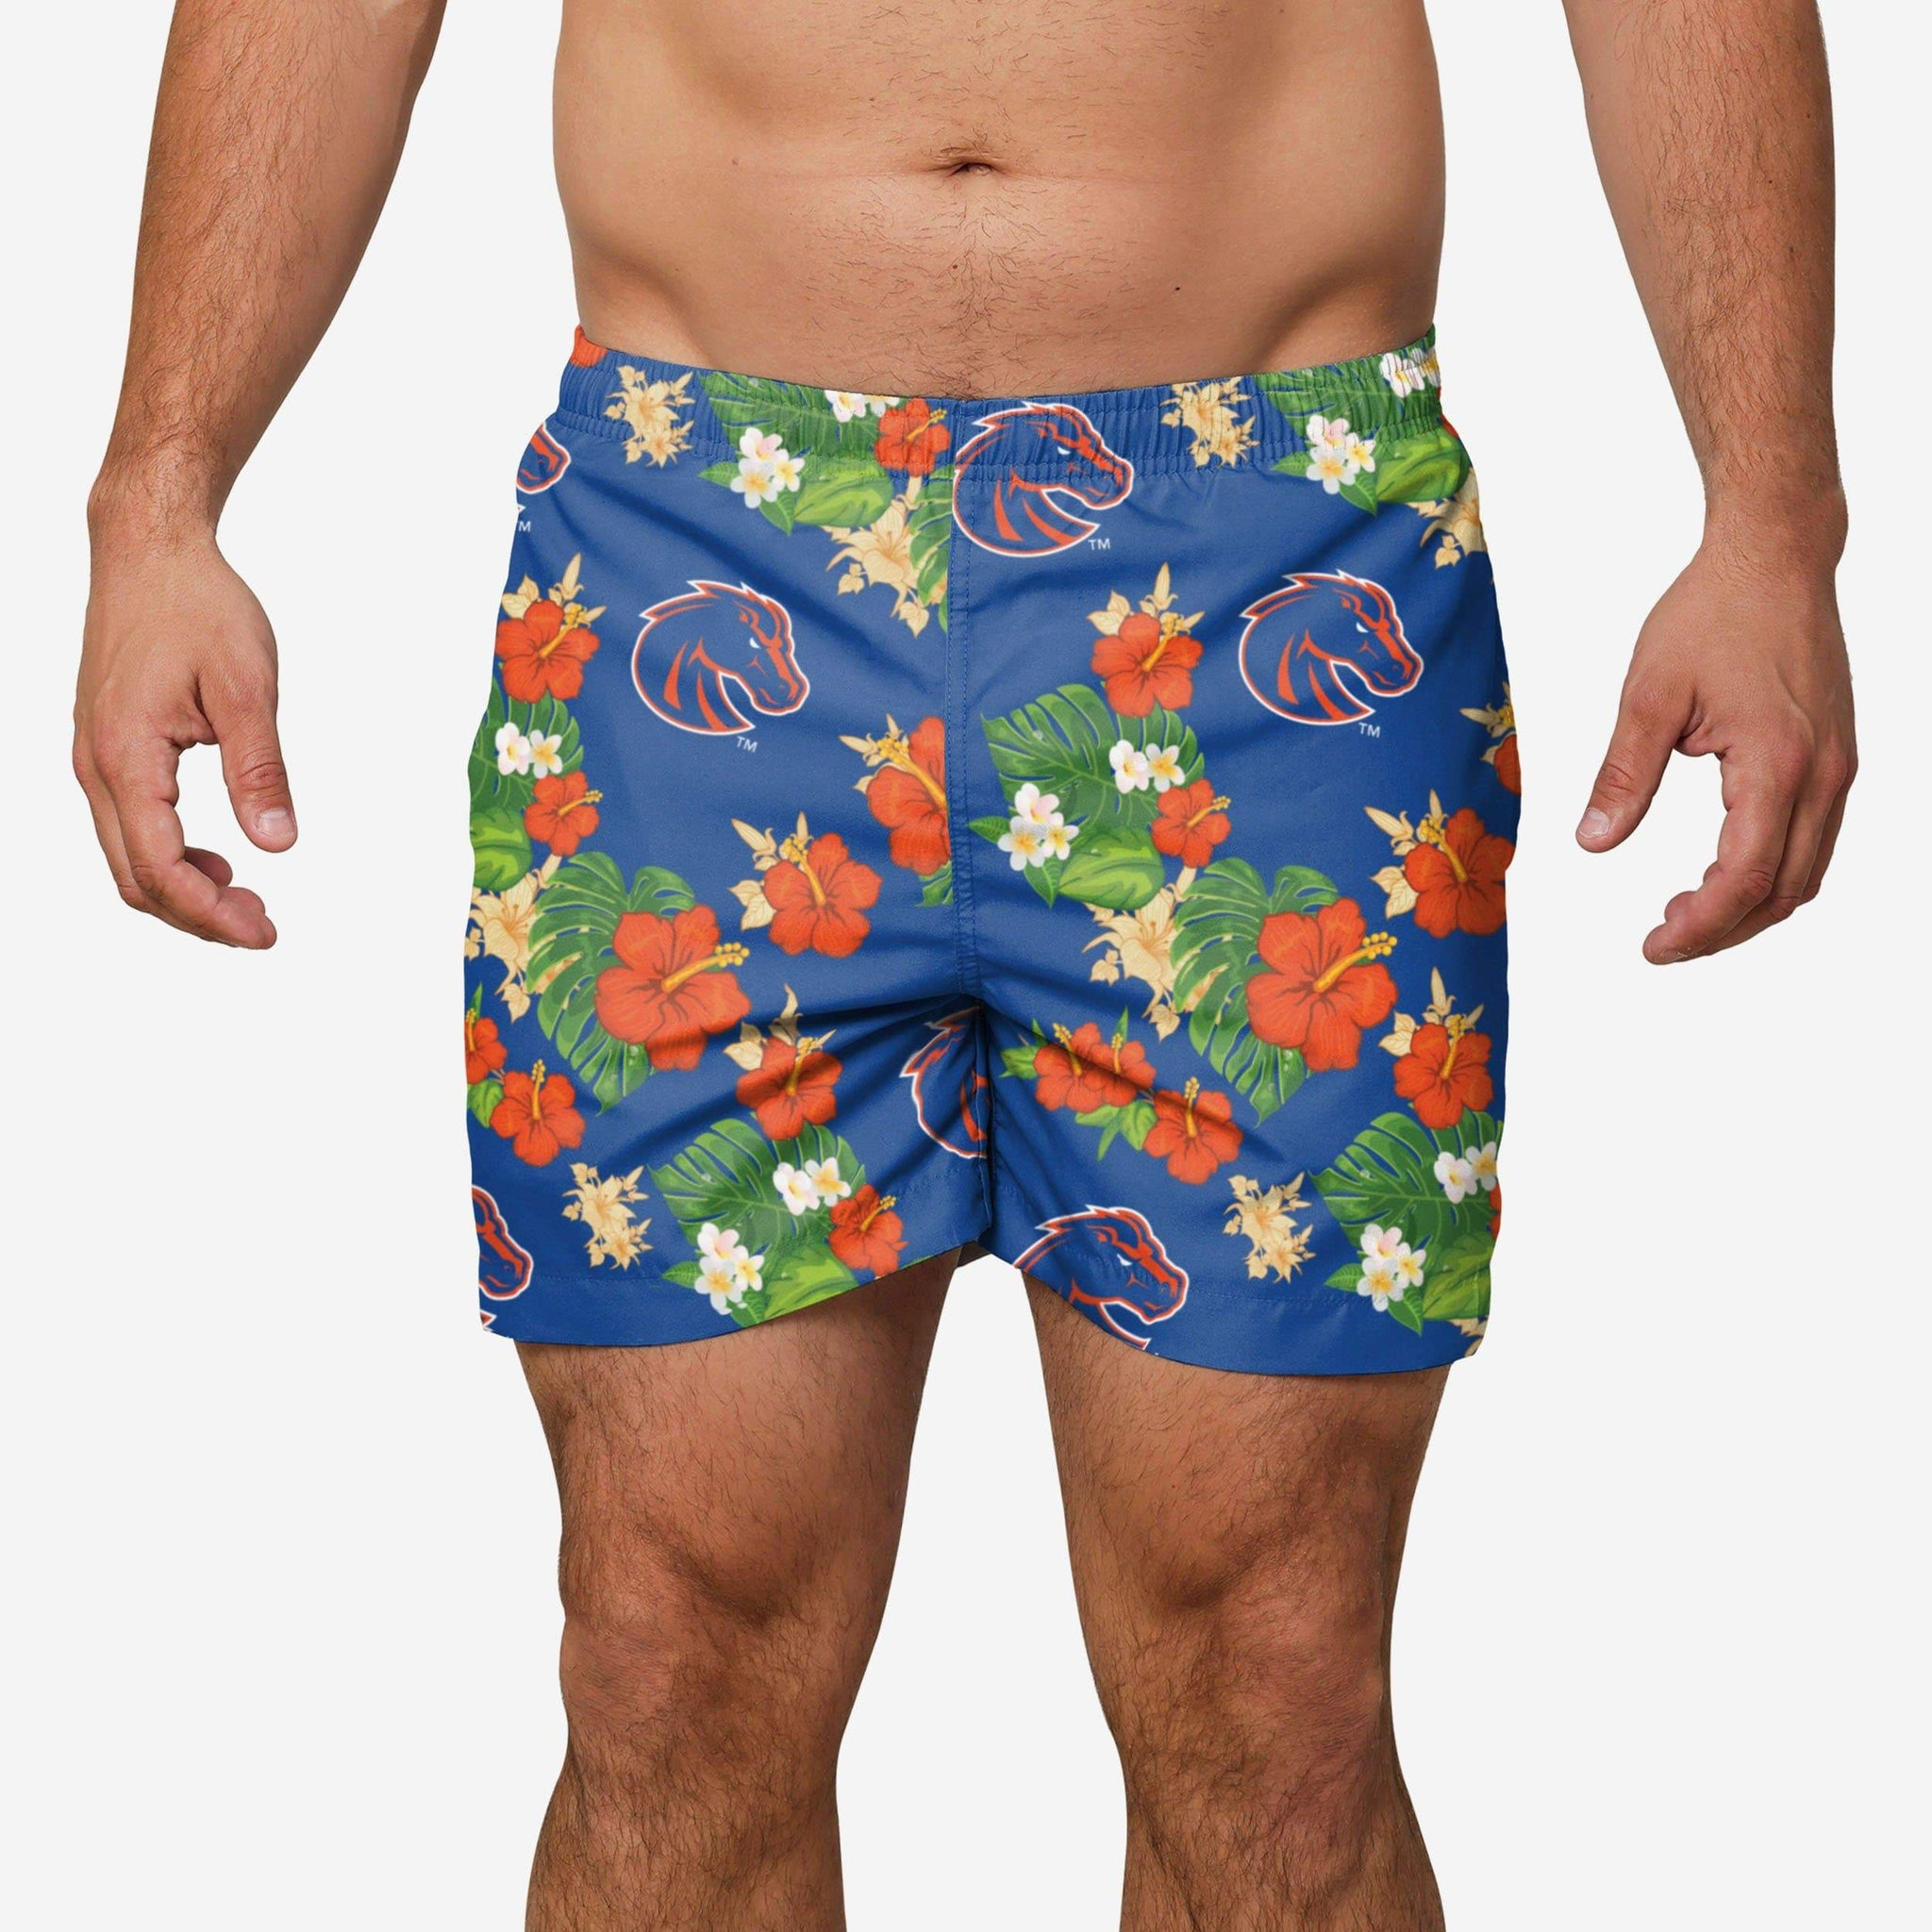 Boise St Floral Swimming Trunks